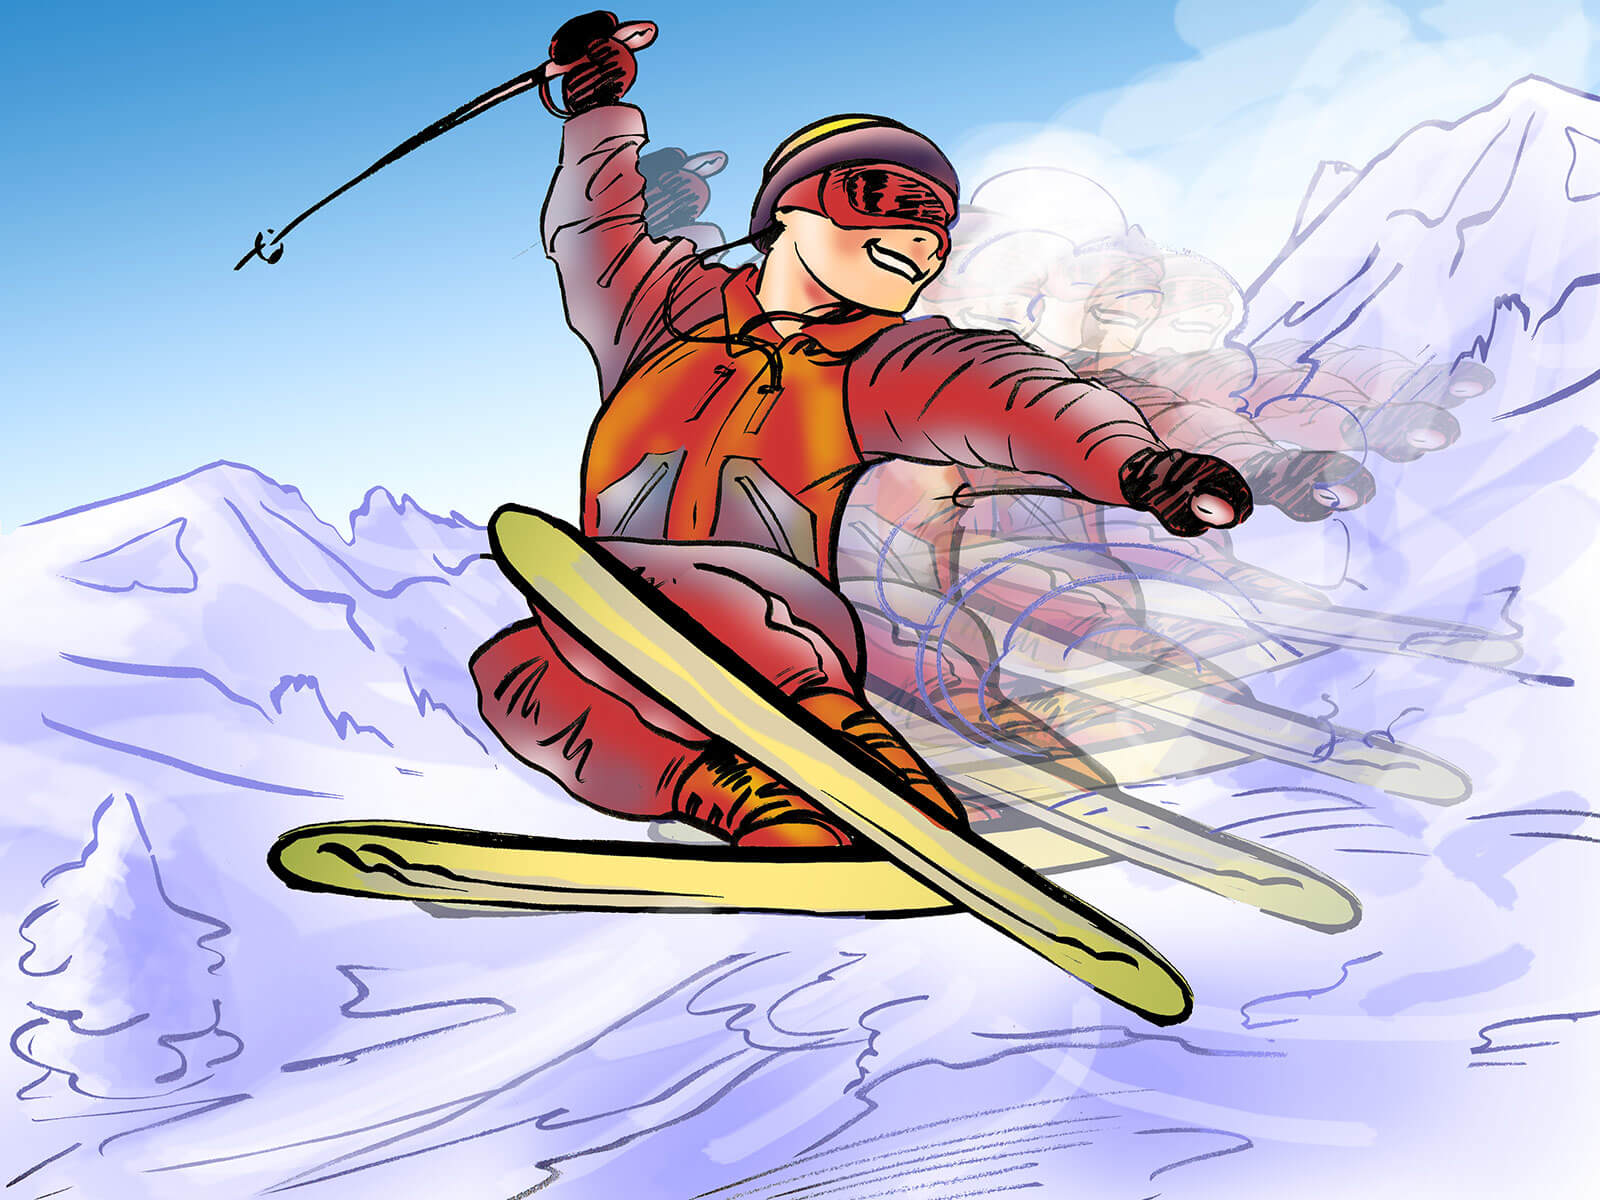 drawing art: skier showing off